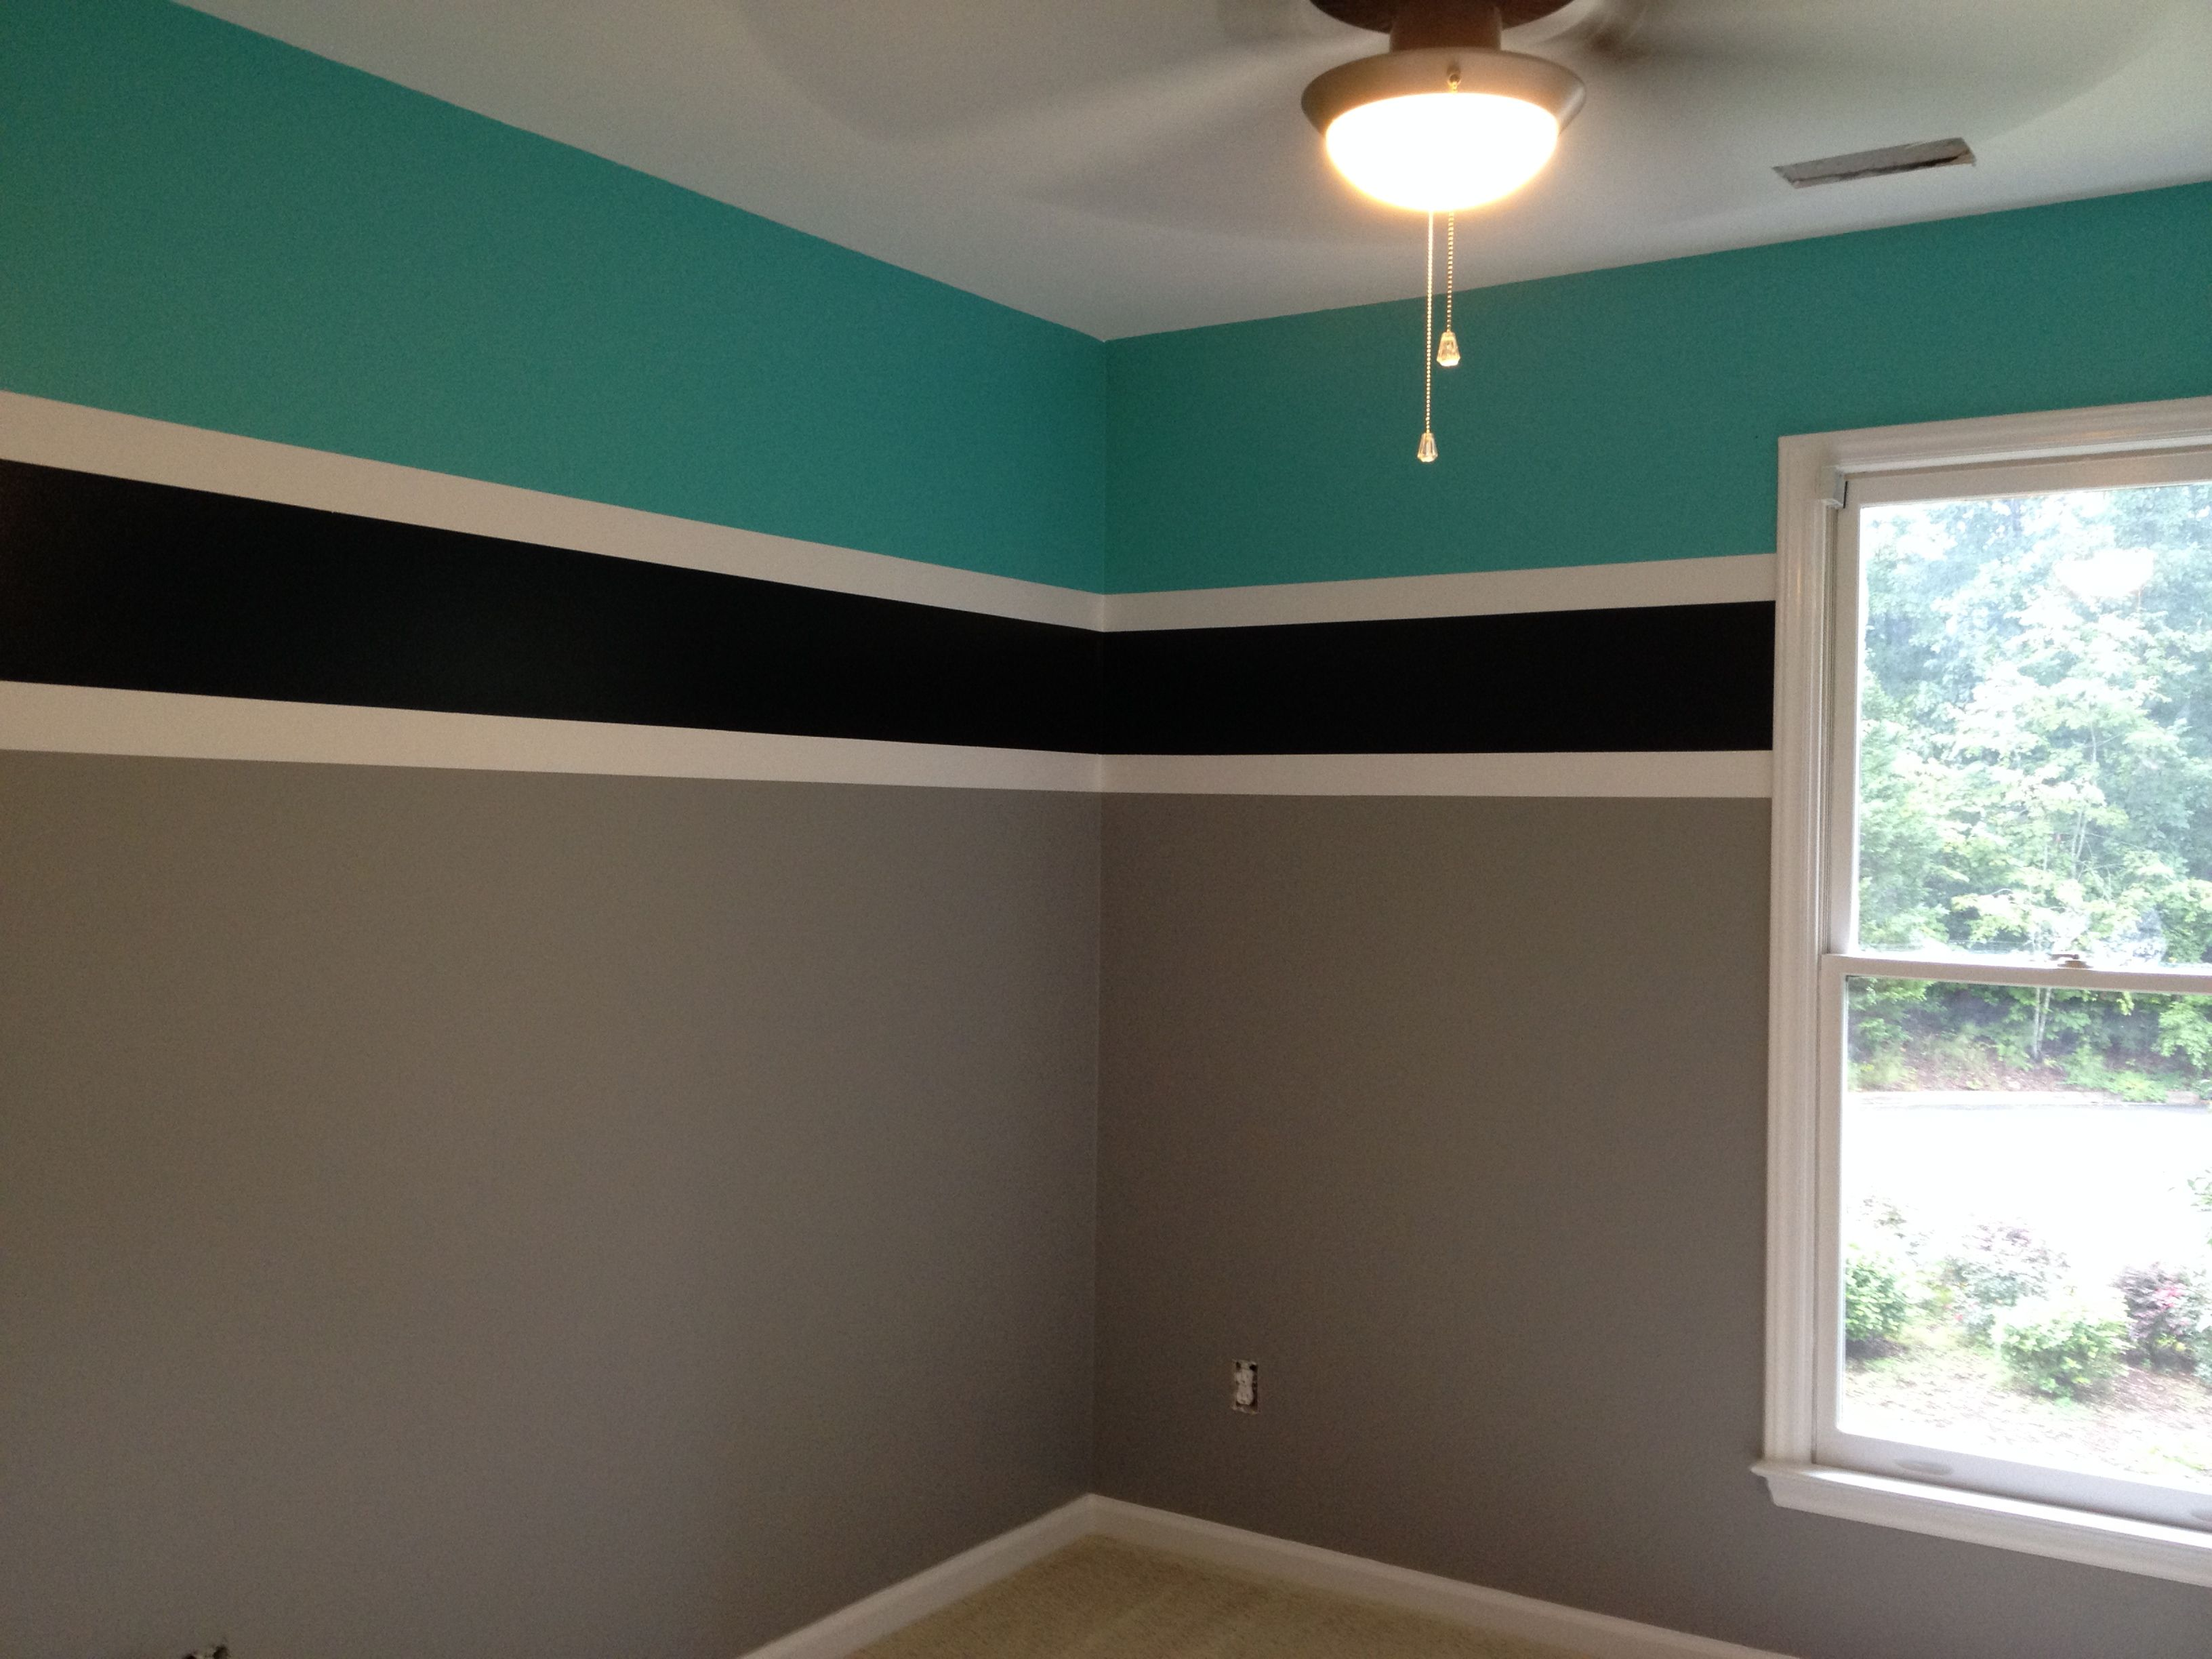 Green boys bedroom ideas - Final Product Teenage Boys Room Colors For A Swimmer Benjamin Moore Teal Tone